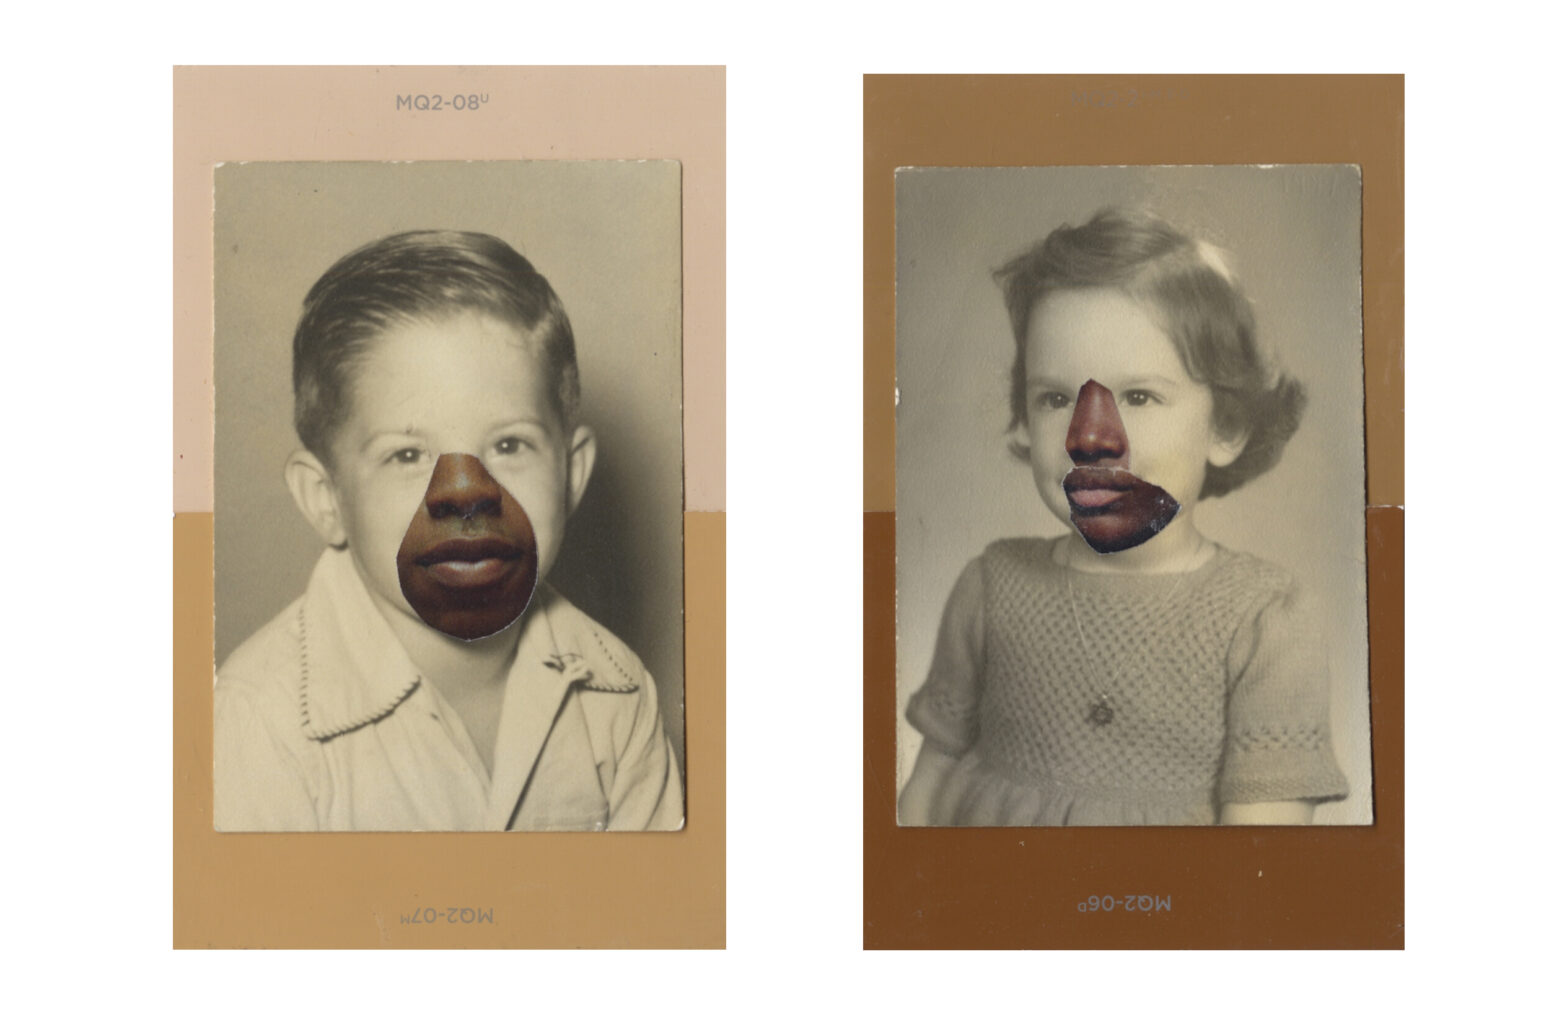 Two collages depicting three layers. The bottom layer are brown paint sample cards, similar to dark skin tones. The second layer features a black and white photo of a small child posing for a portrait, the left is a young white boy, the right is a young white girl. The photos are aged and look to be fromthe 1960s. Pasted on top of the boys and girls nose and mouth are the nose and mouth from adults with Black skin.